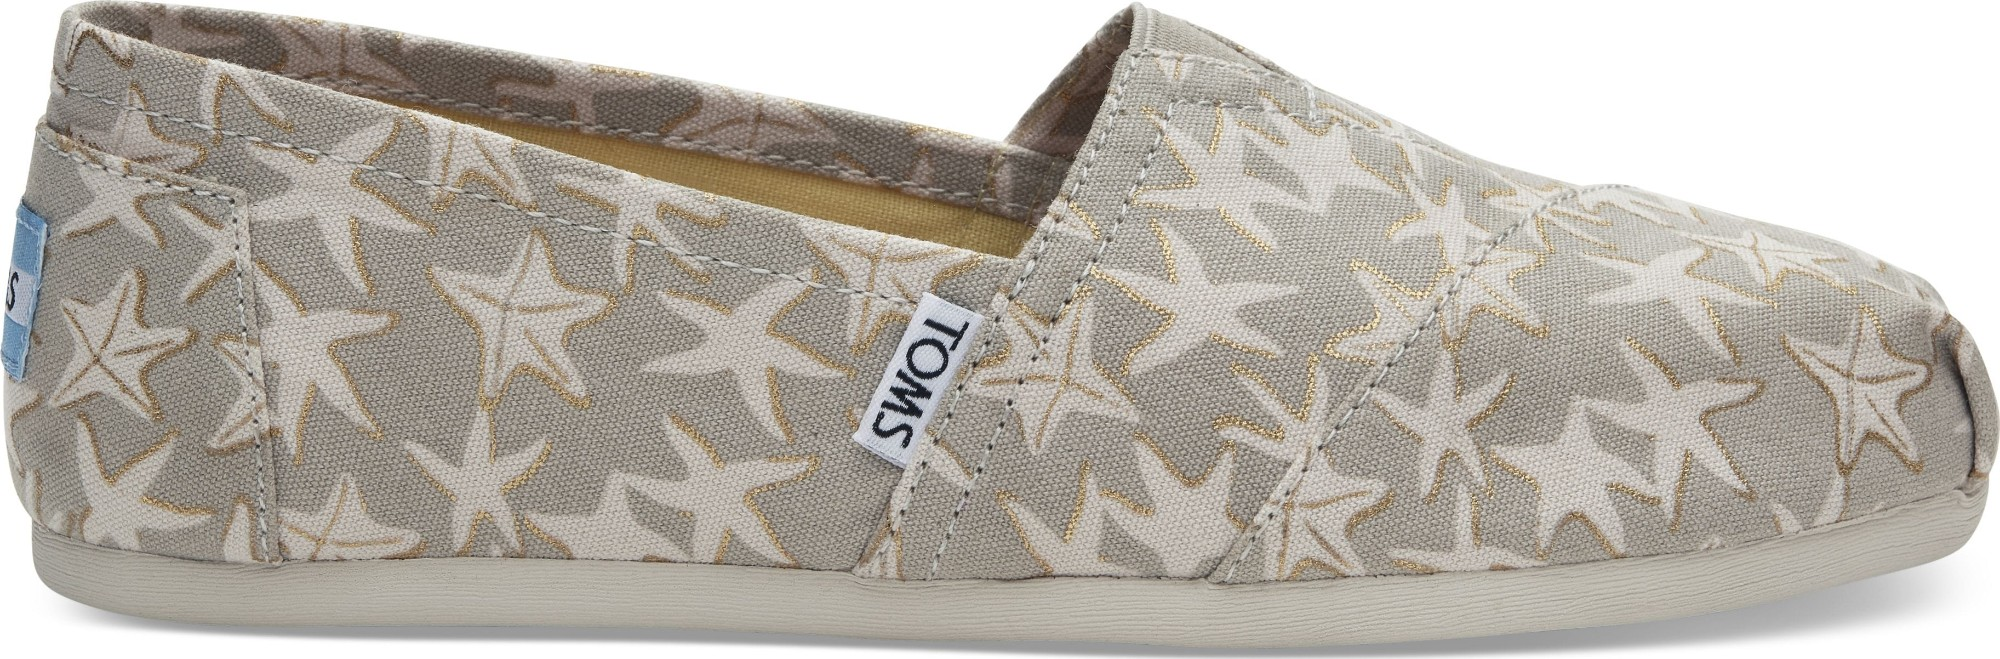 TOMS Foil Starfish Women's Alpargata Oxford Tan/Gold 40